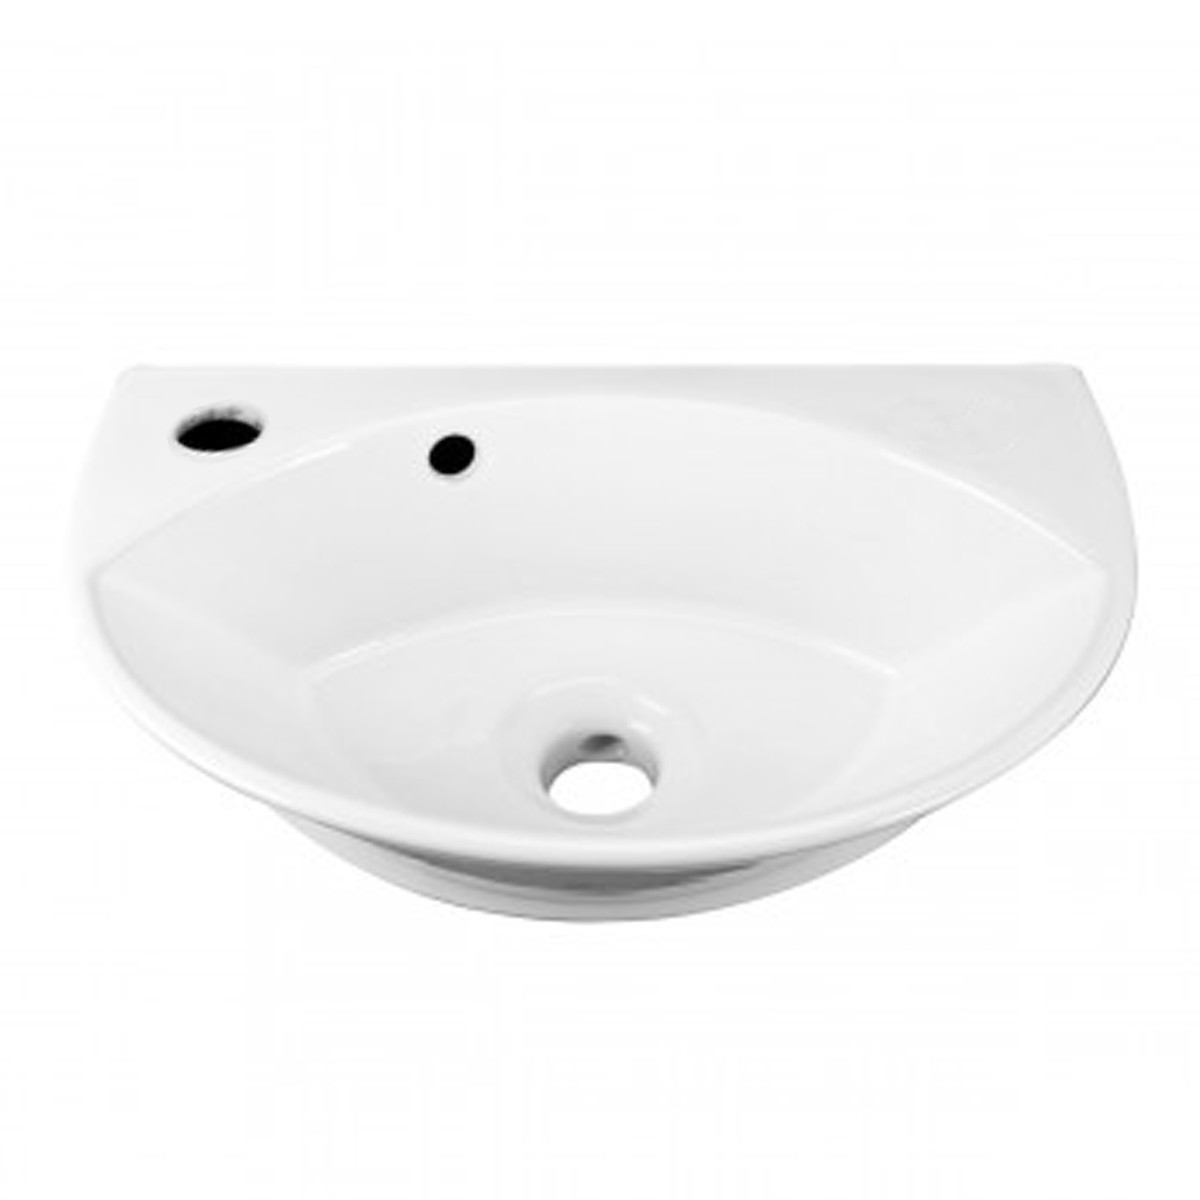 Small Wall Mount Sink White Porcelain with Overflow Left Side Faucet Hole Small Wall Mount Bathroom Sink Wall Mount Bathroom Sink White Bathroom Sink